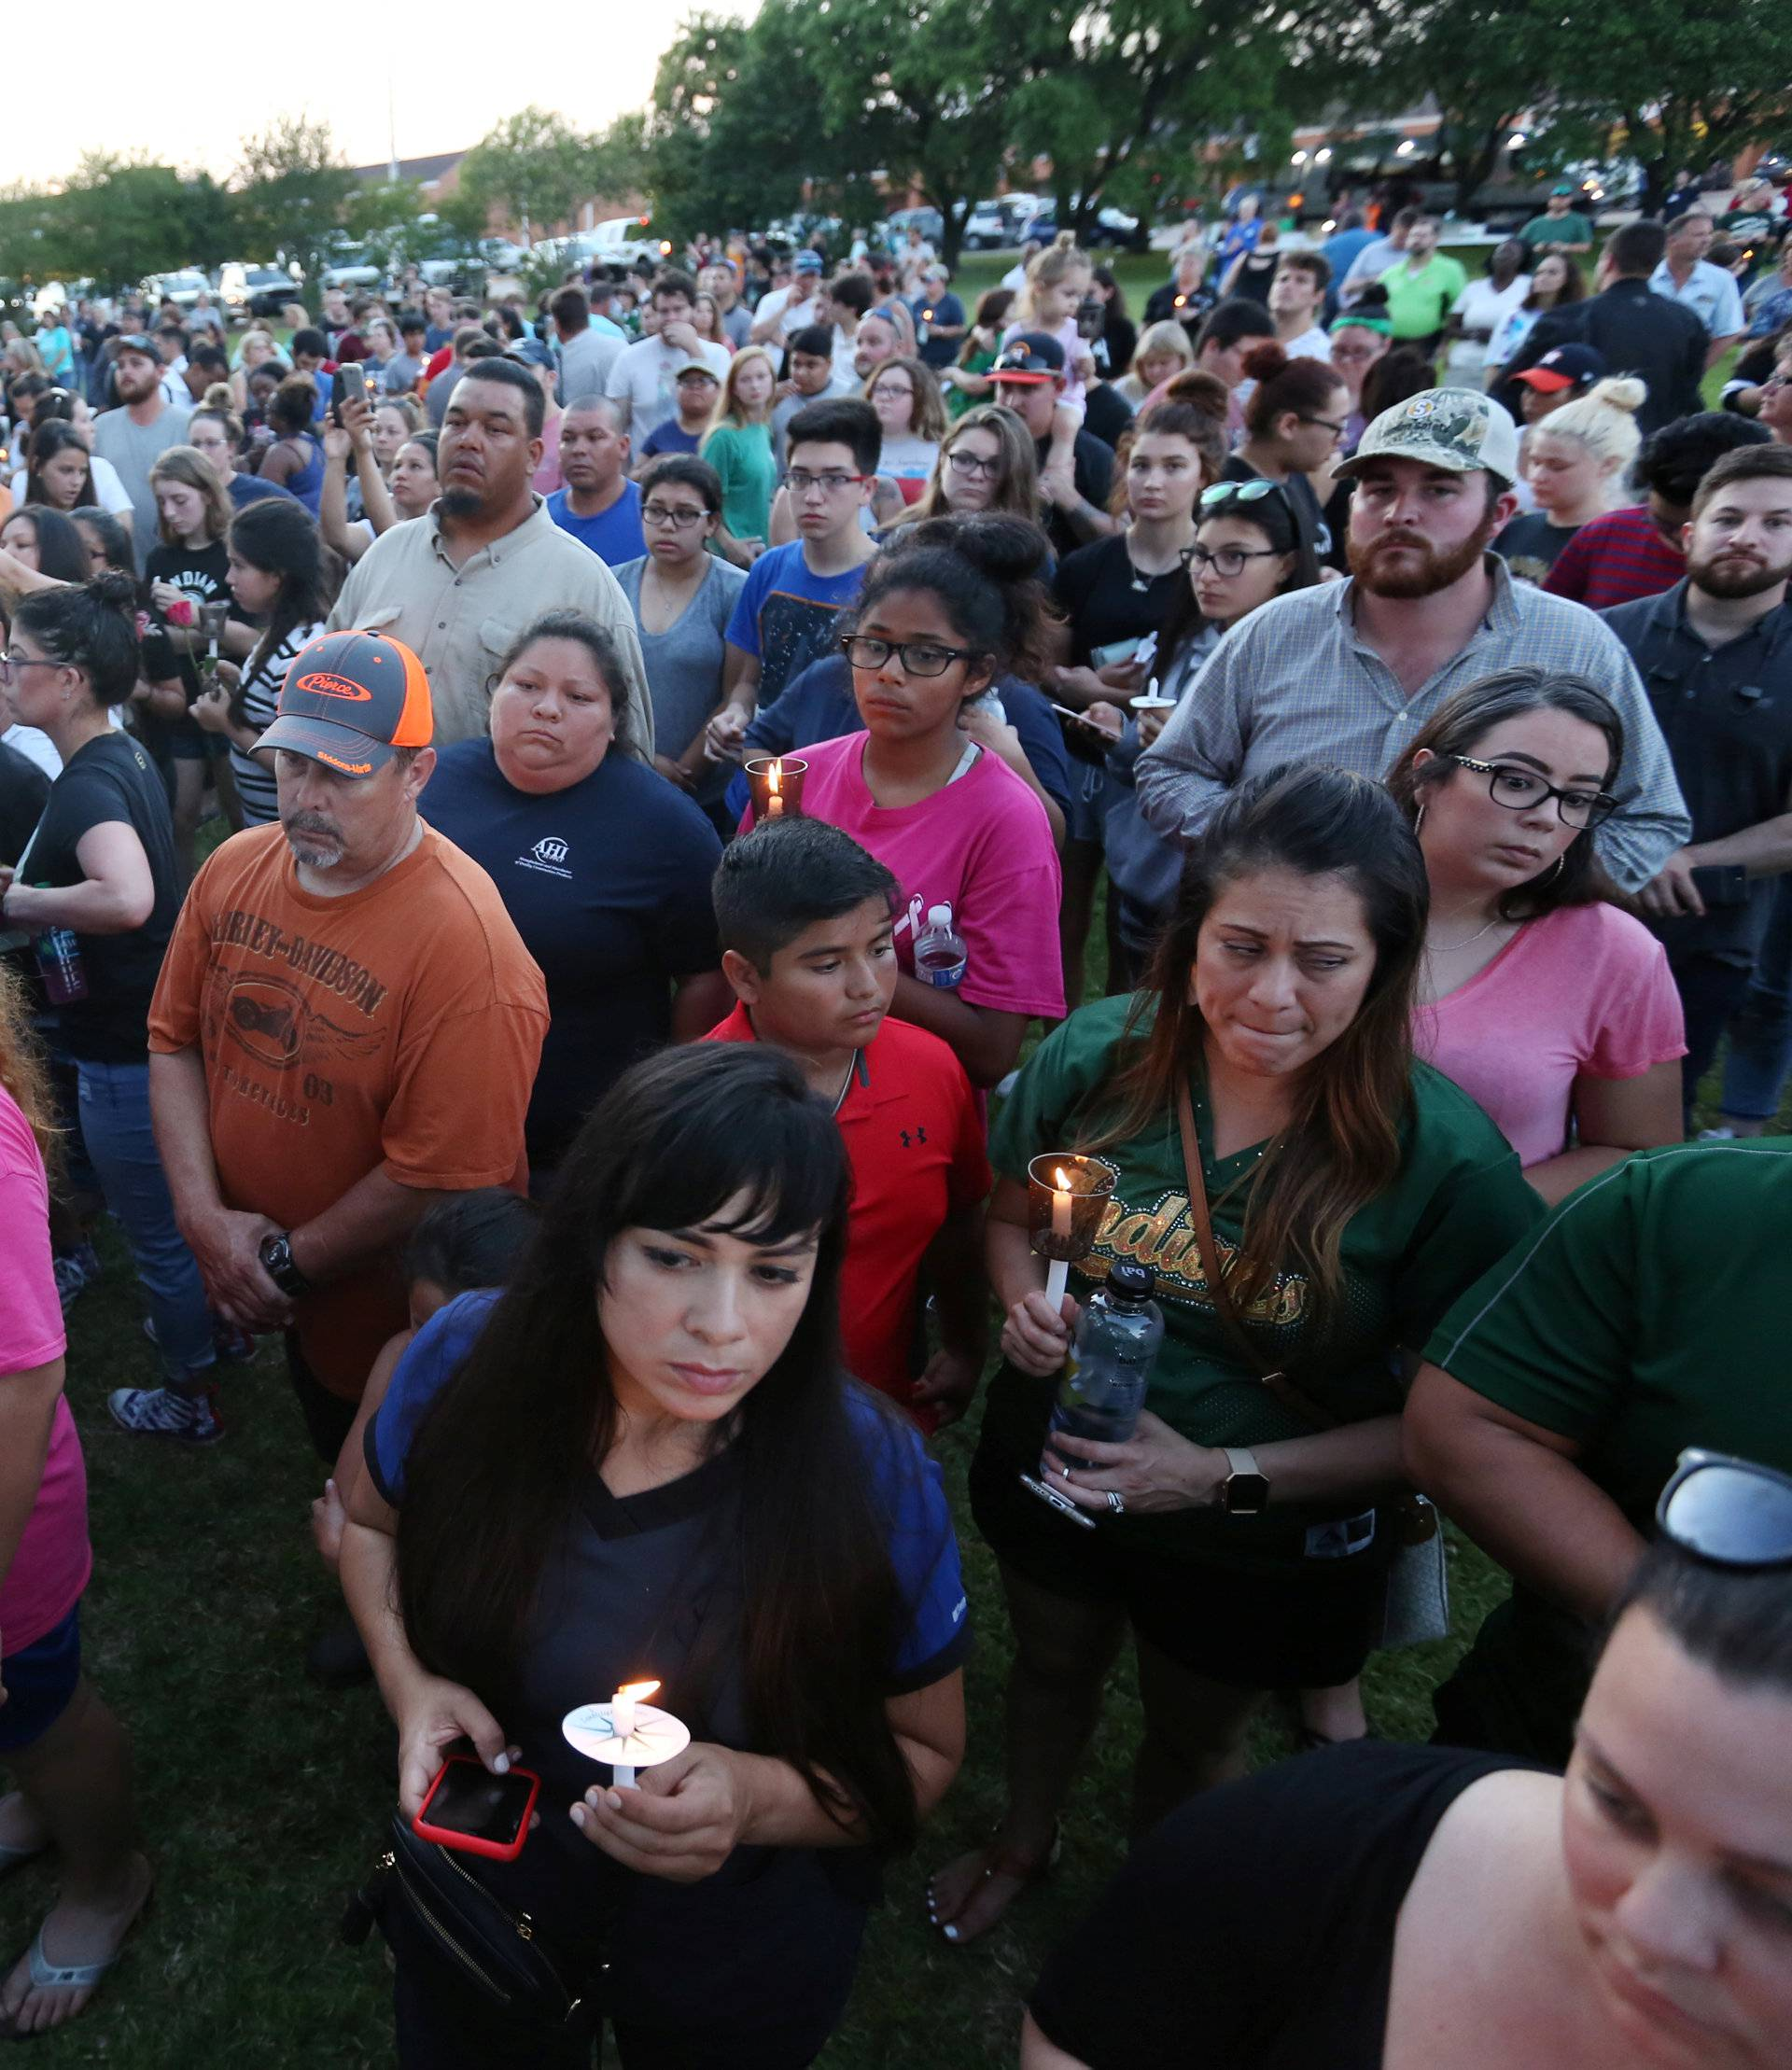 People gather with candles during a vigil held after a shooting left several people dead at Santa Fe High School in Santa Fe, Texas